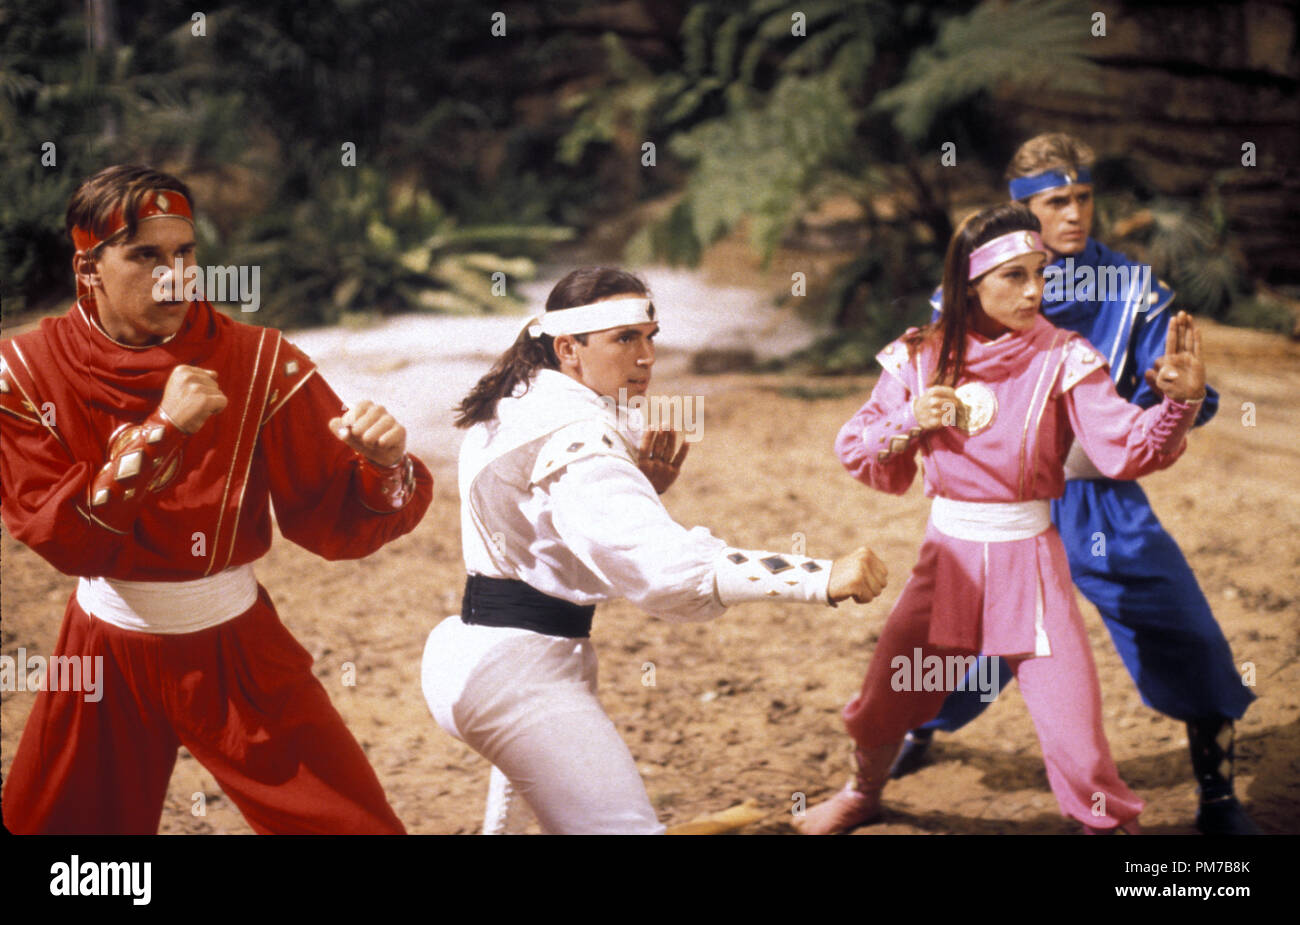 Film Still from 'Mighty Morphin Power Rangers: The Movie' Steve Cardenas, Jason David Frank, Amy Jo Johnson, David Yost © 1995 20th Century Fox Photo Credit: Marc Vignes  File Reference # 31043211THA  For Editorial Use Only - All Rights Reserved - Stock Image